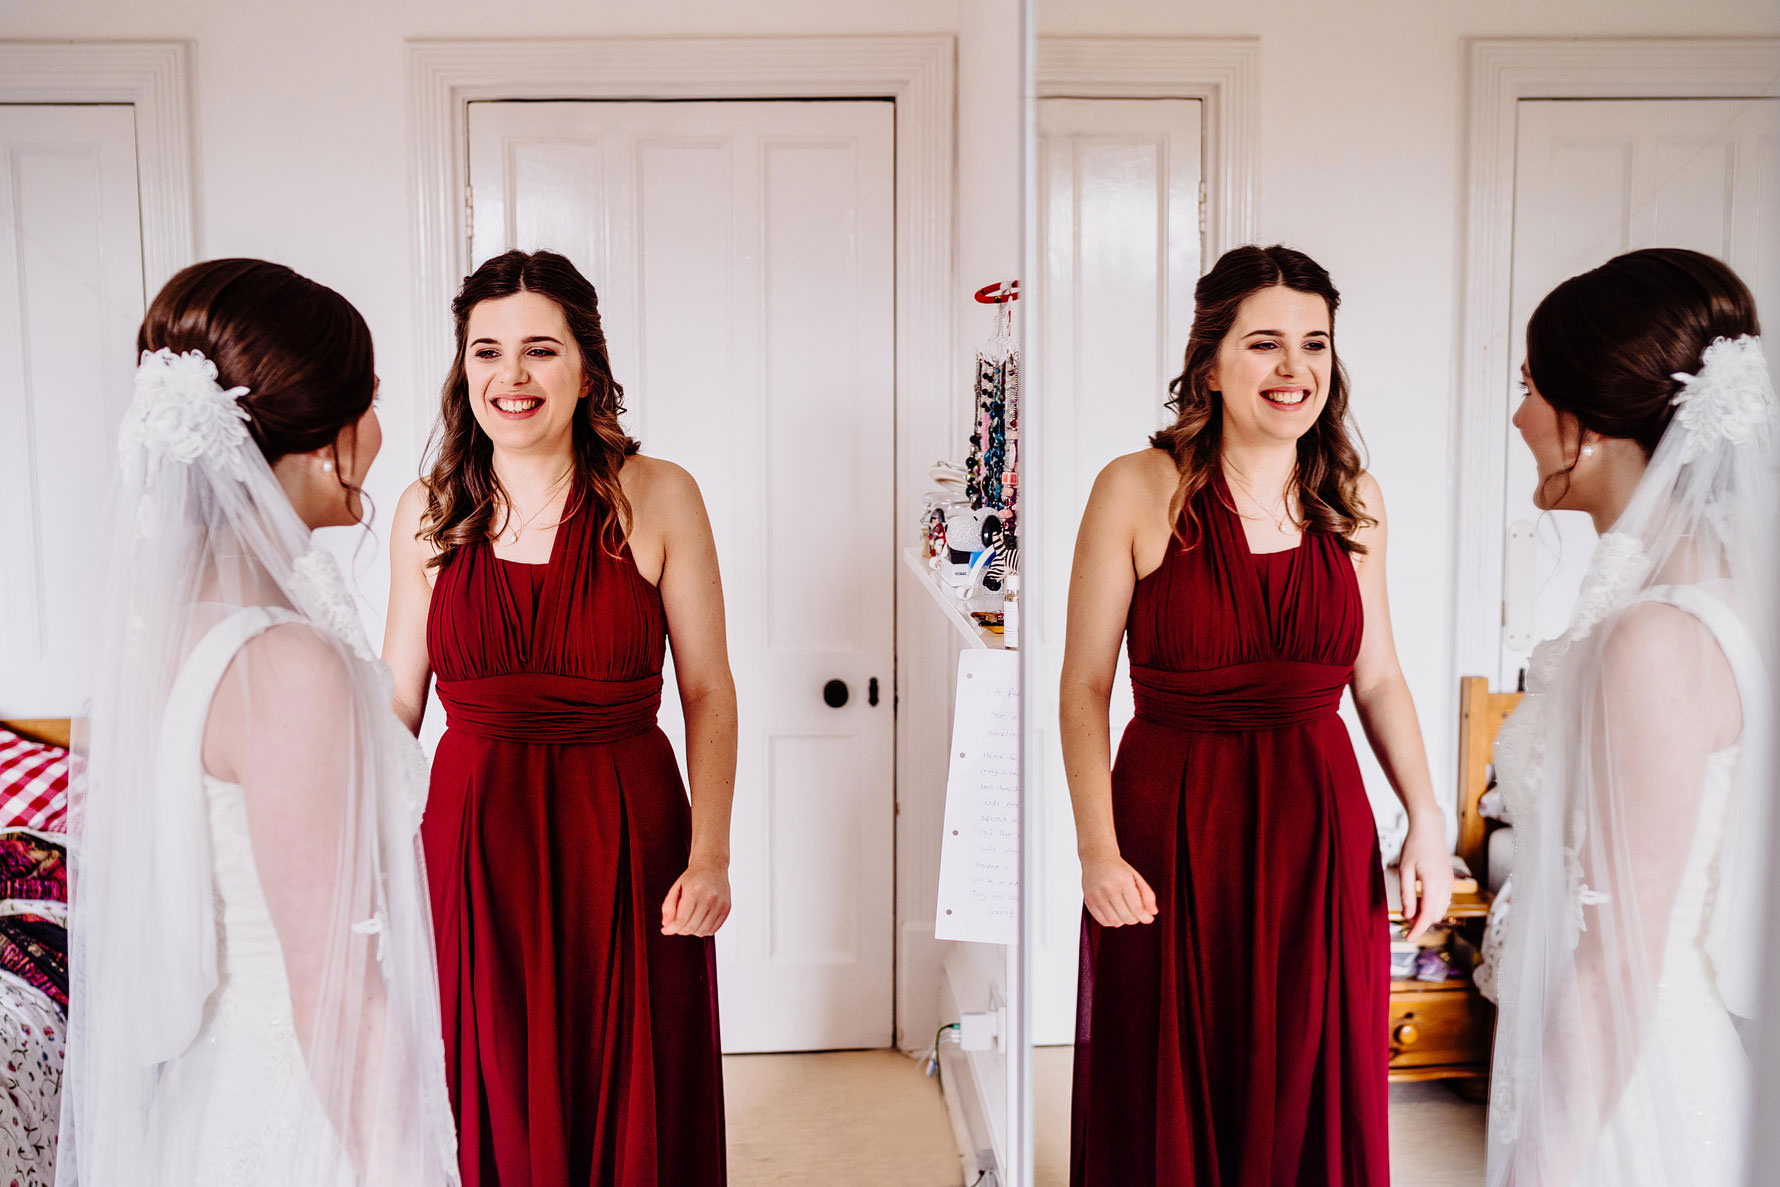 a bridesmaid looks excitedly at a bride